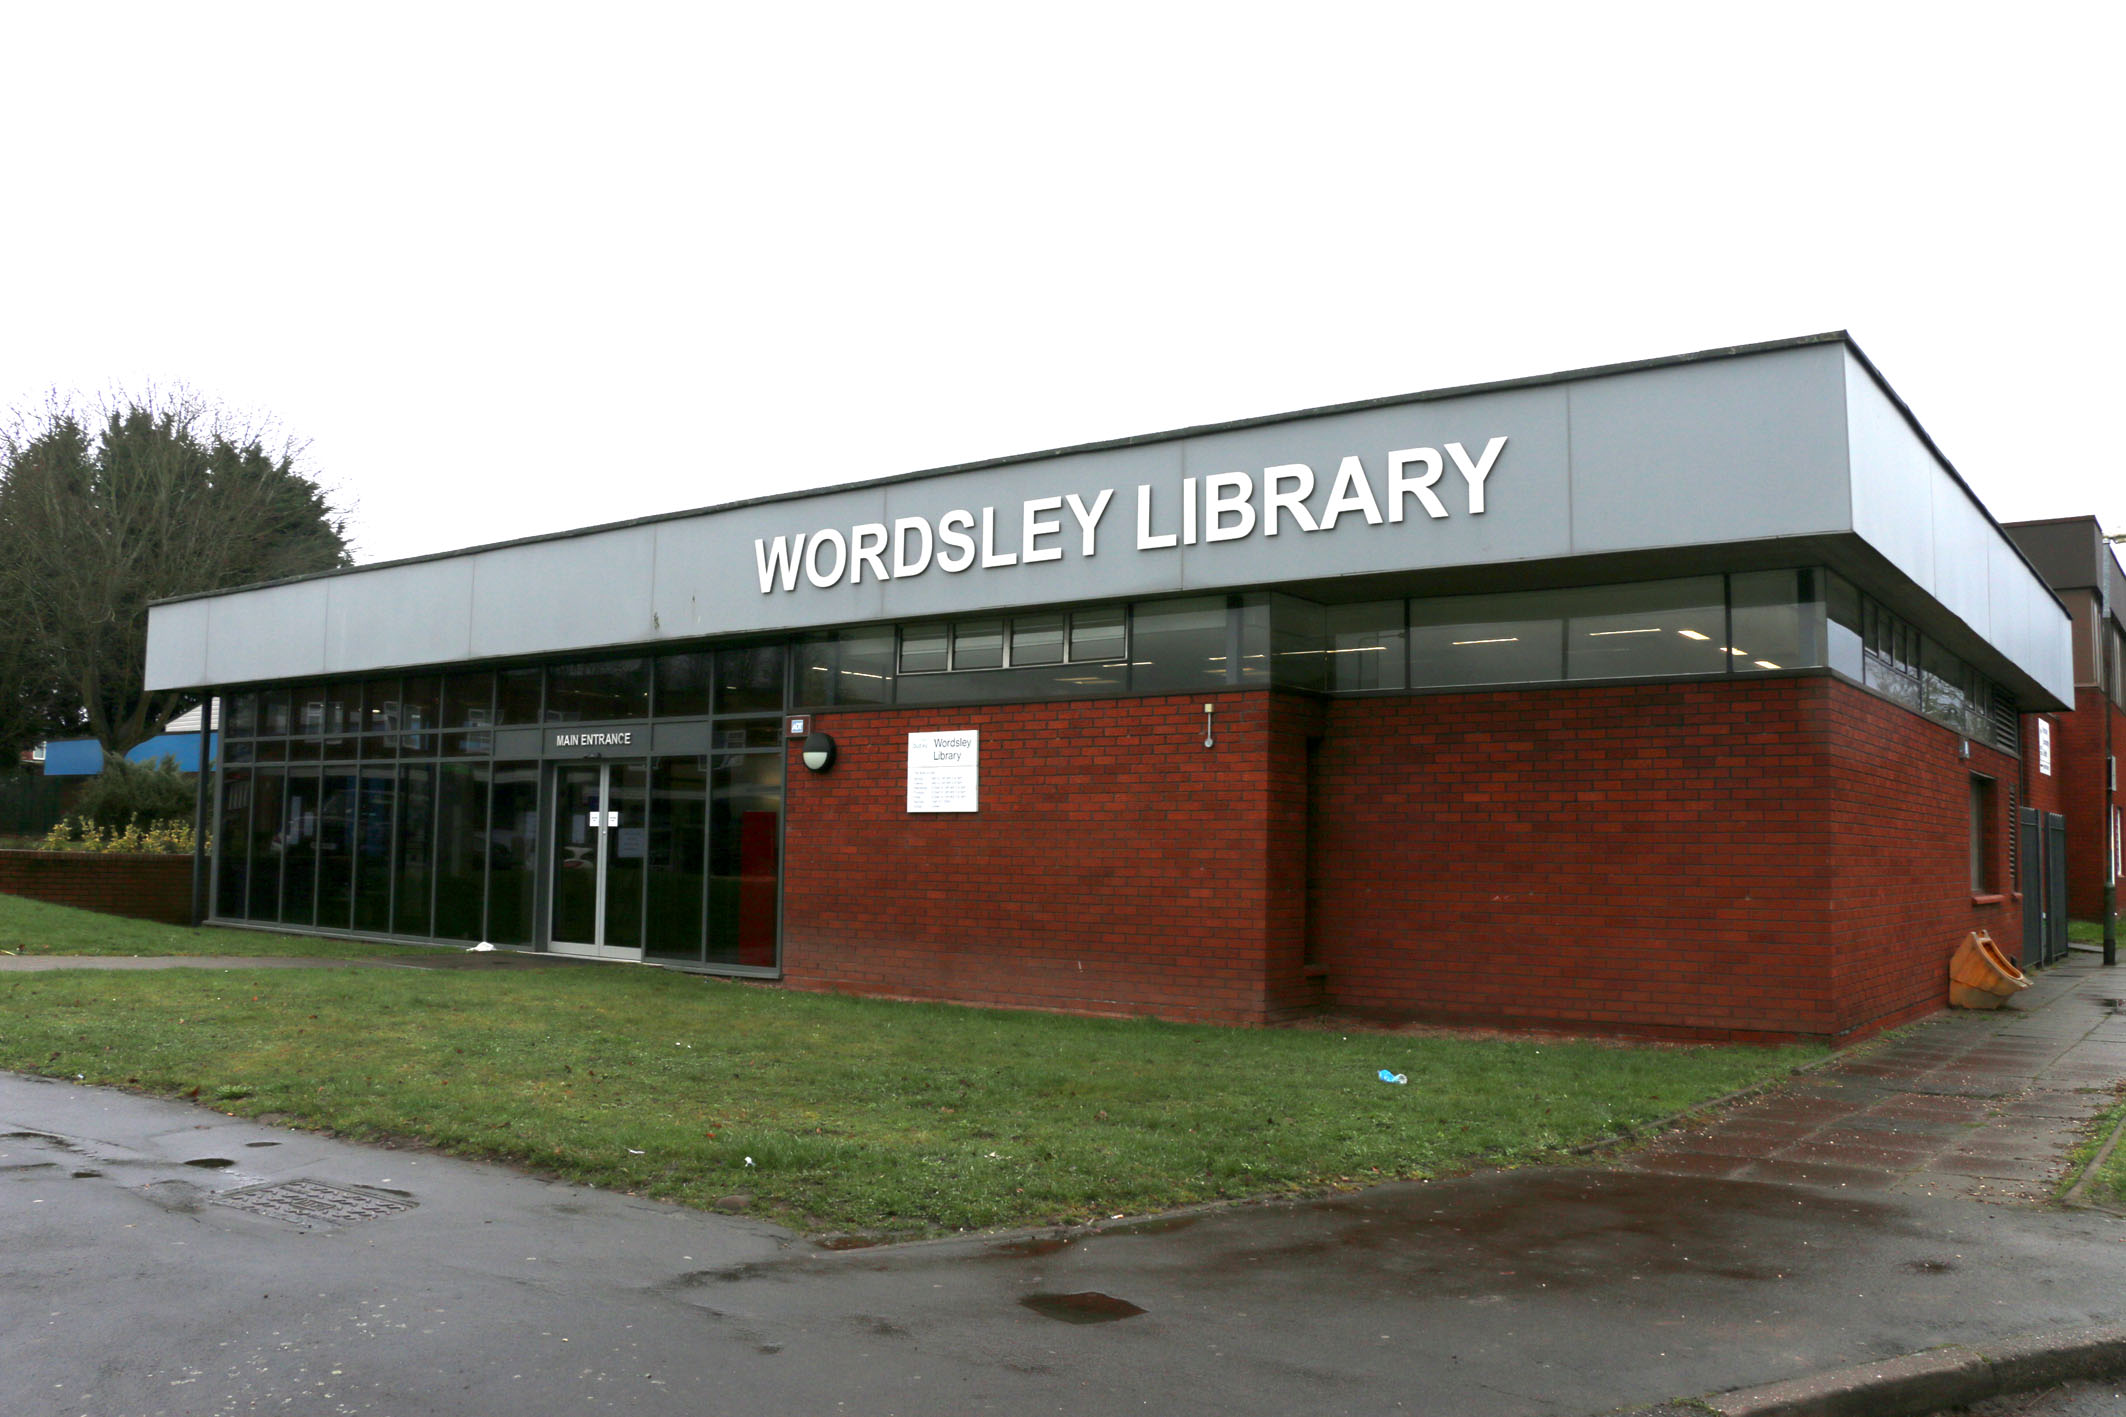 Love is in the air as top romance authors visit Wordsley Library